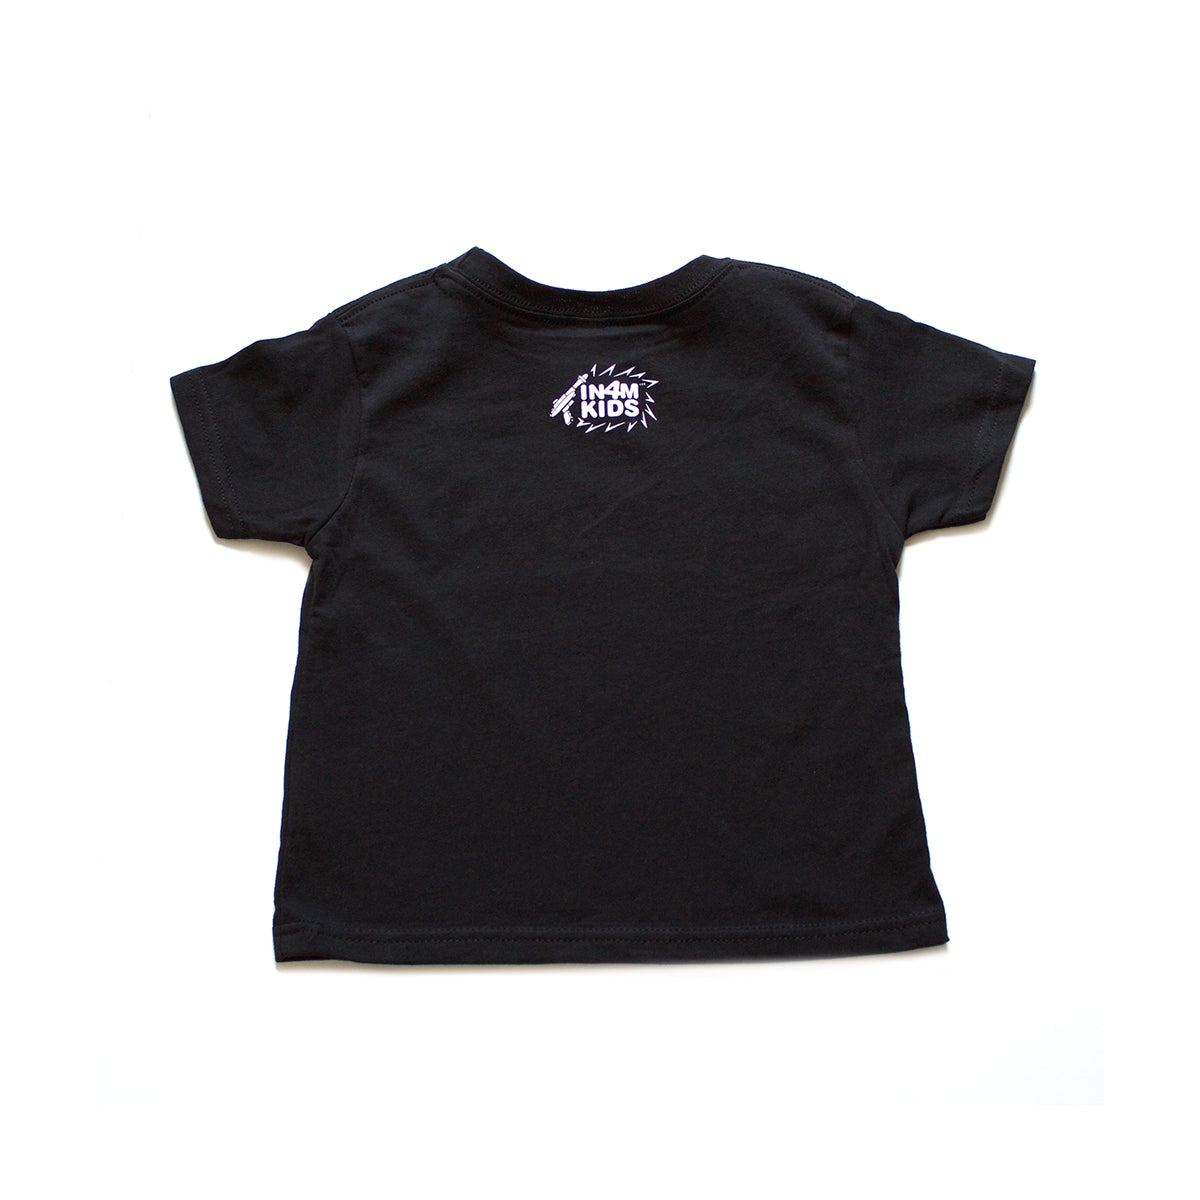 SNOTTY BY NATURE KIDS TEE (BLACK)